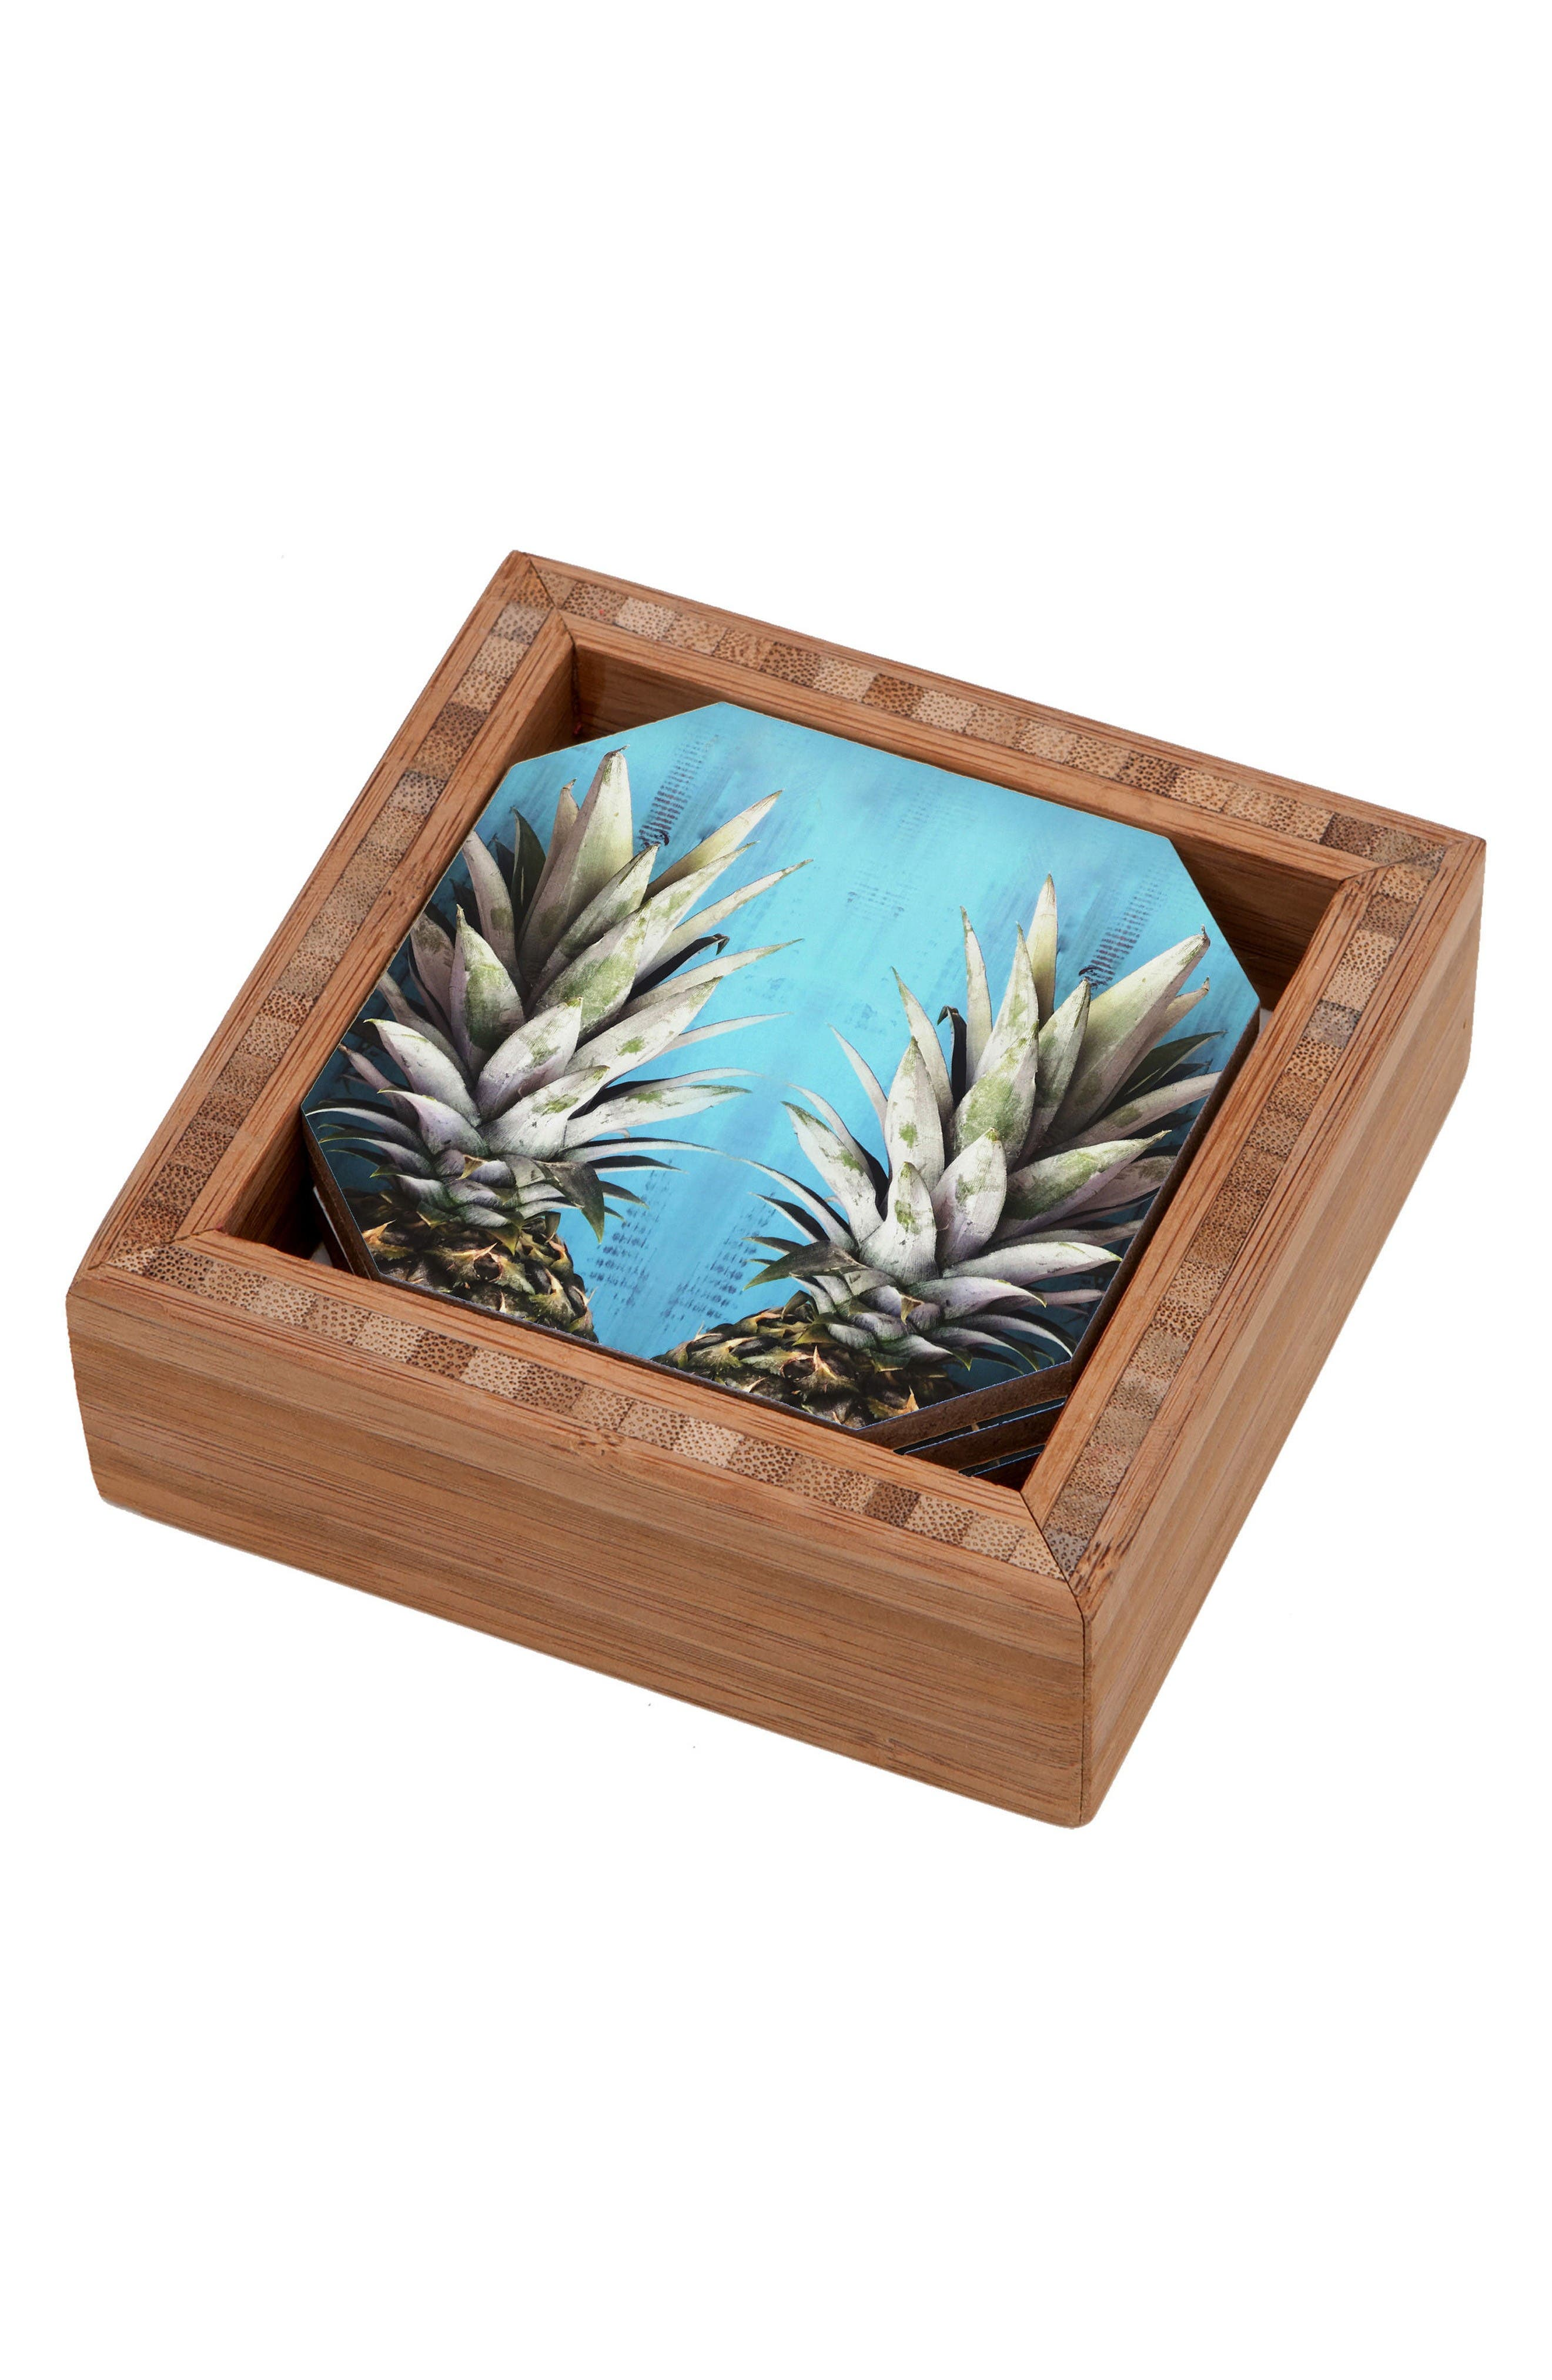 Main Image - Deny Designs How About Them Pineapples Coaster Set of 4 Coasters